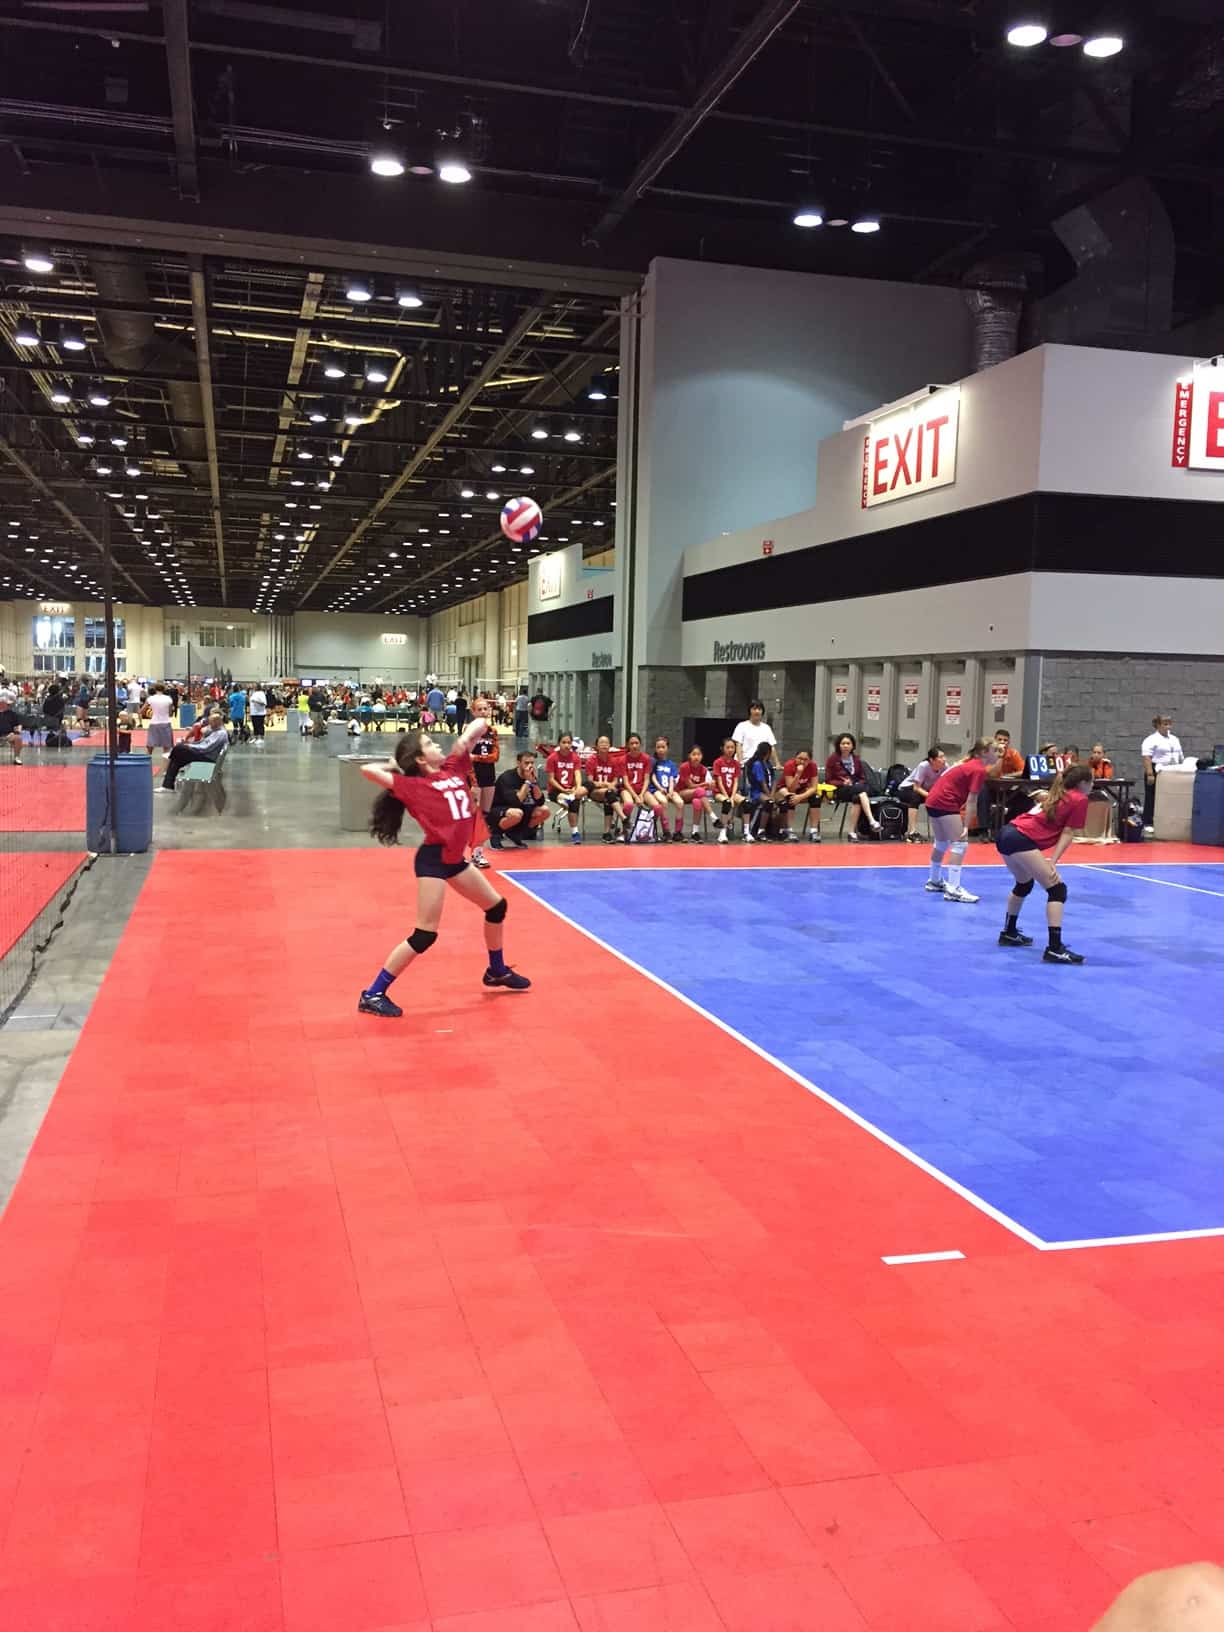 My daughter serving on the club's 12 national team